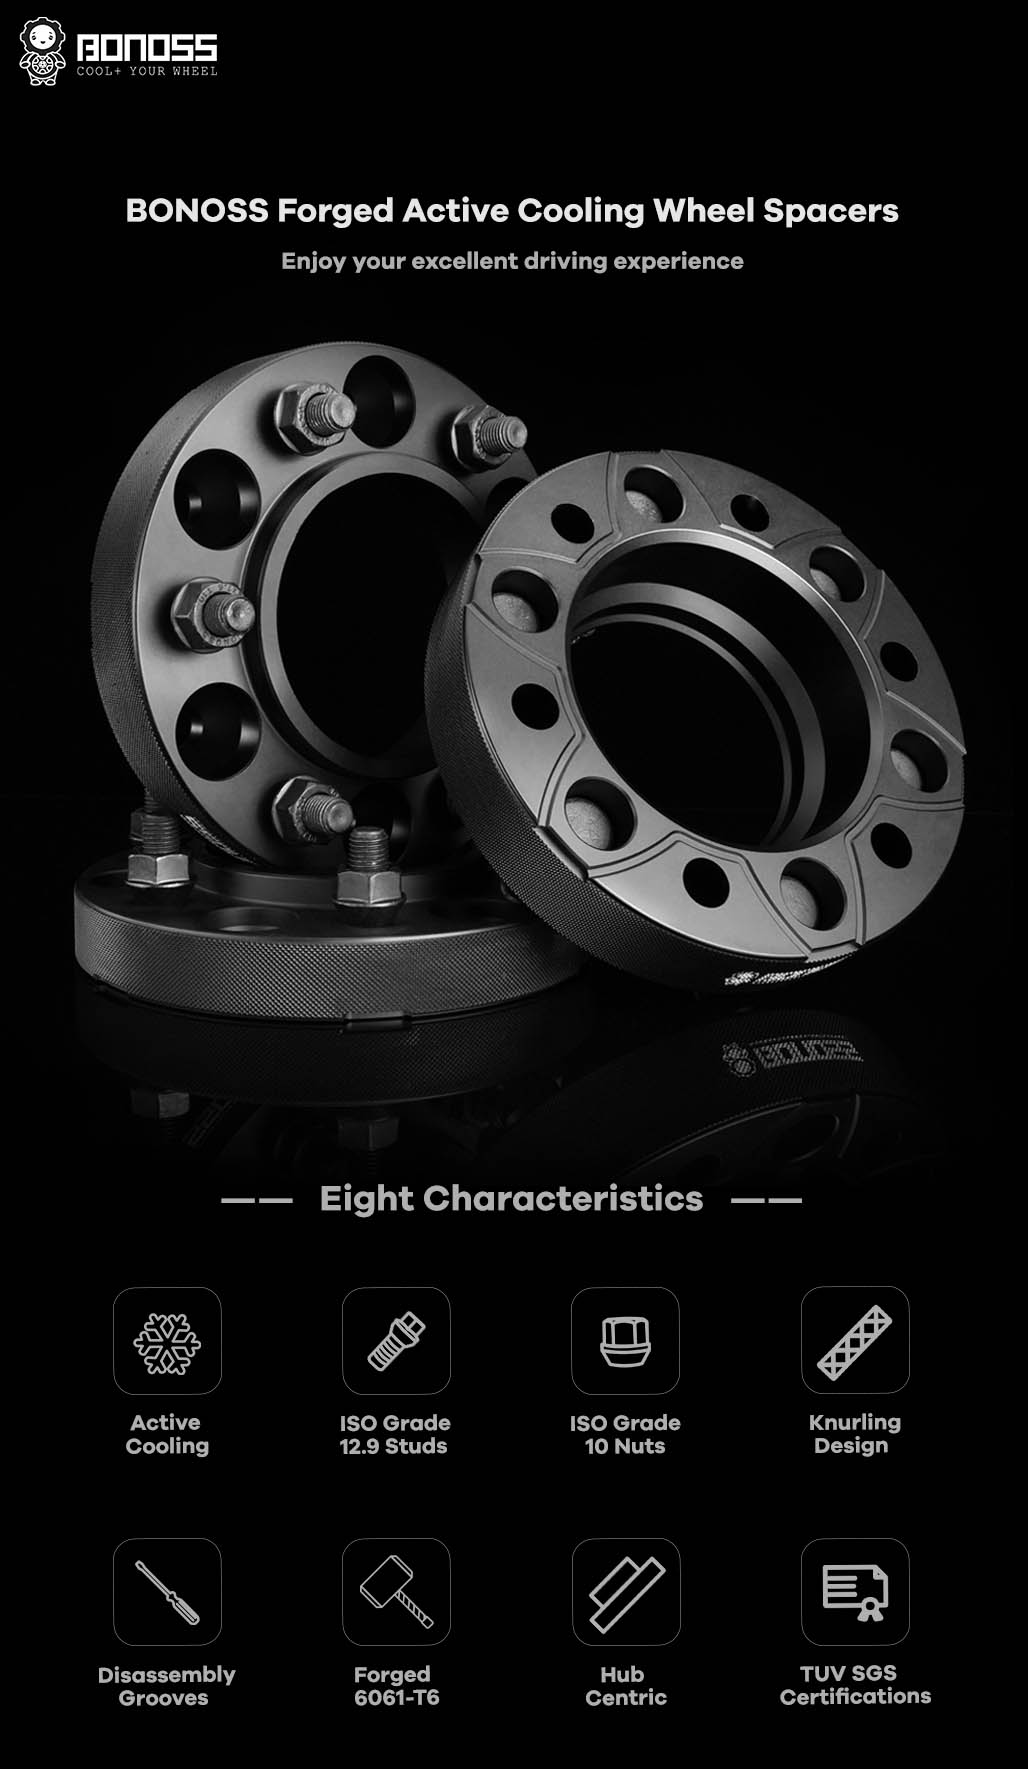 AL6061-T6 BONOSS-forged-active-cooling-wheel-spacer-6X139.7-108-M12X1.5-by-lulu-1